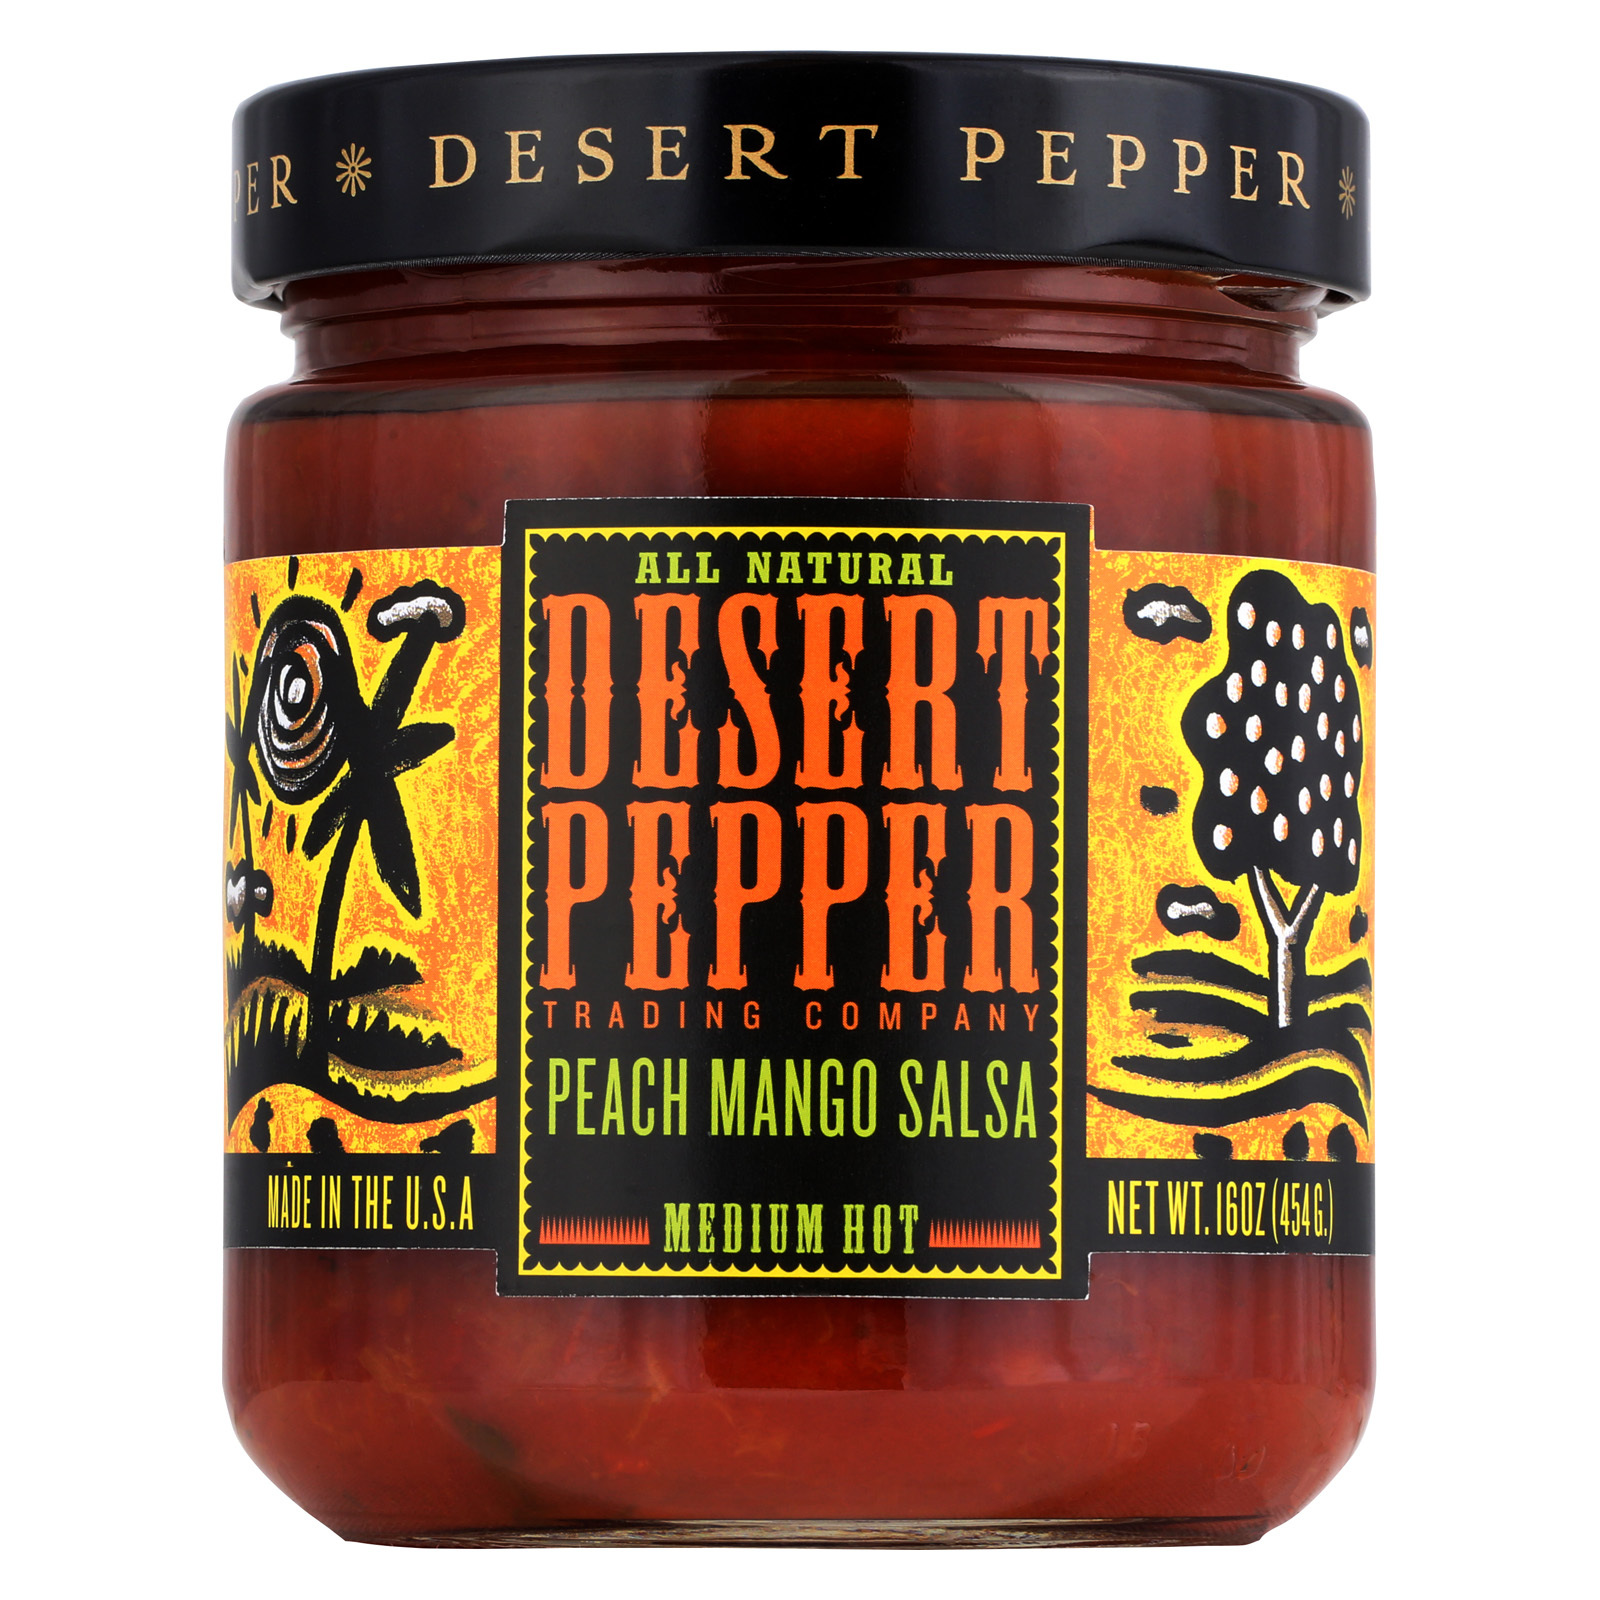 Desert Pepper Trading Medium Hot Peach Mango Salsa - Case of 6 - 16 oz.